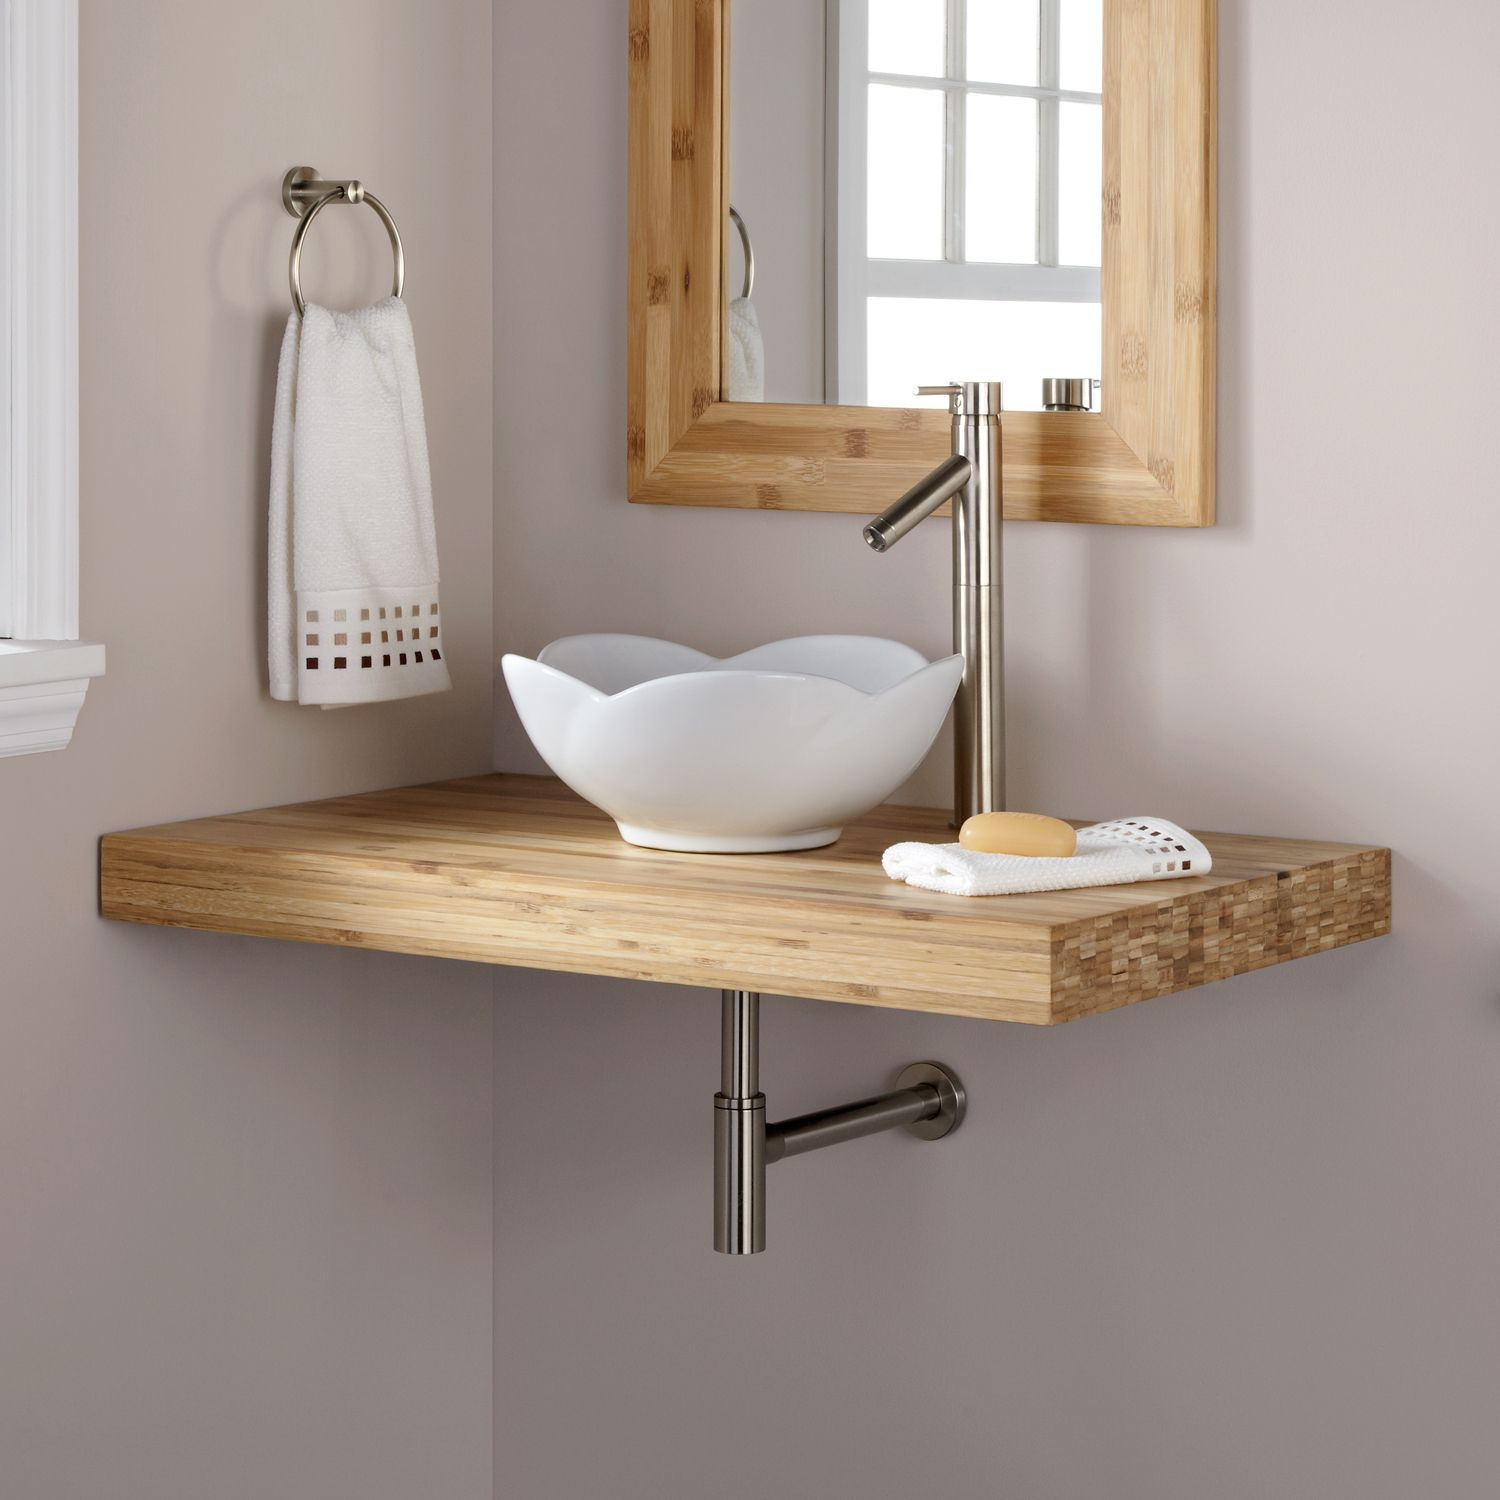 Bath Tubs Faucets